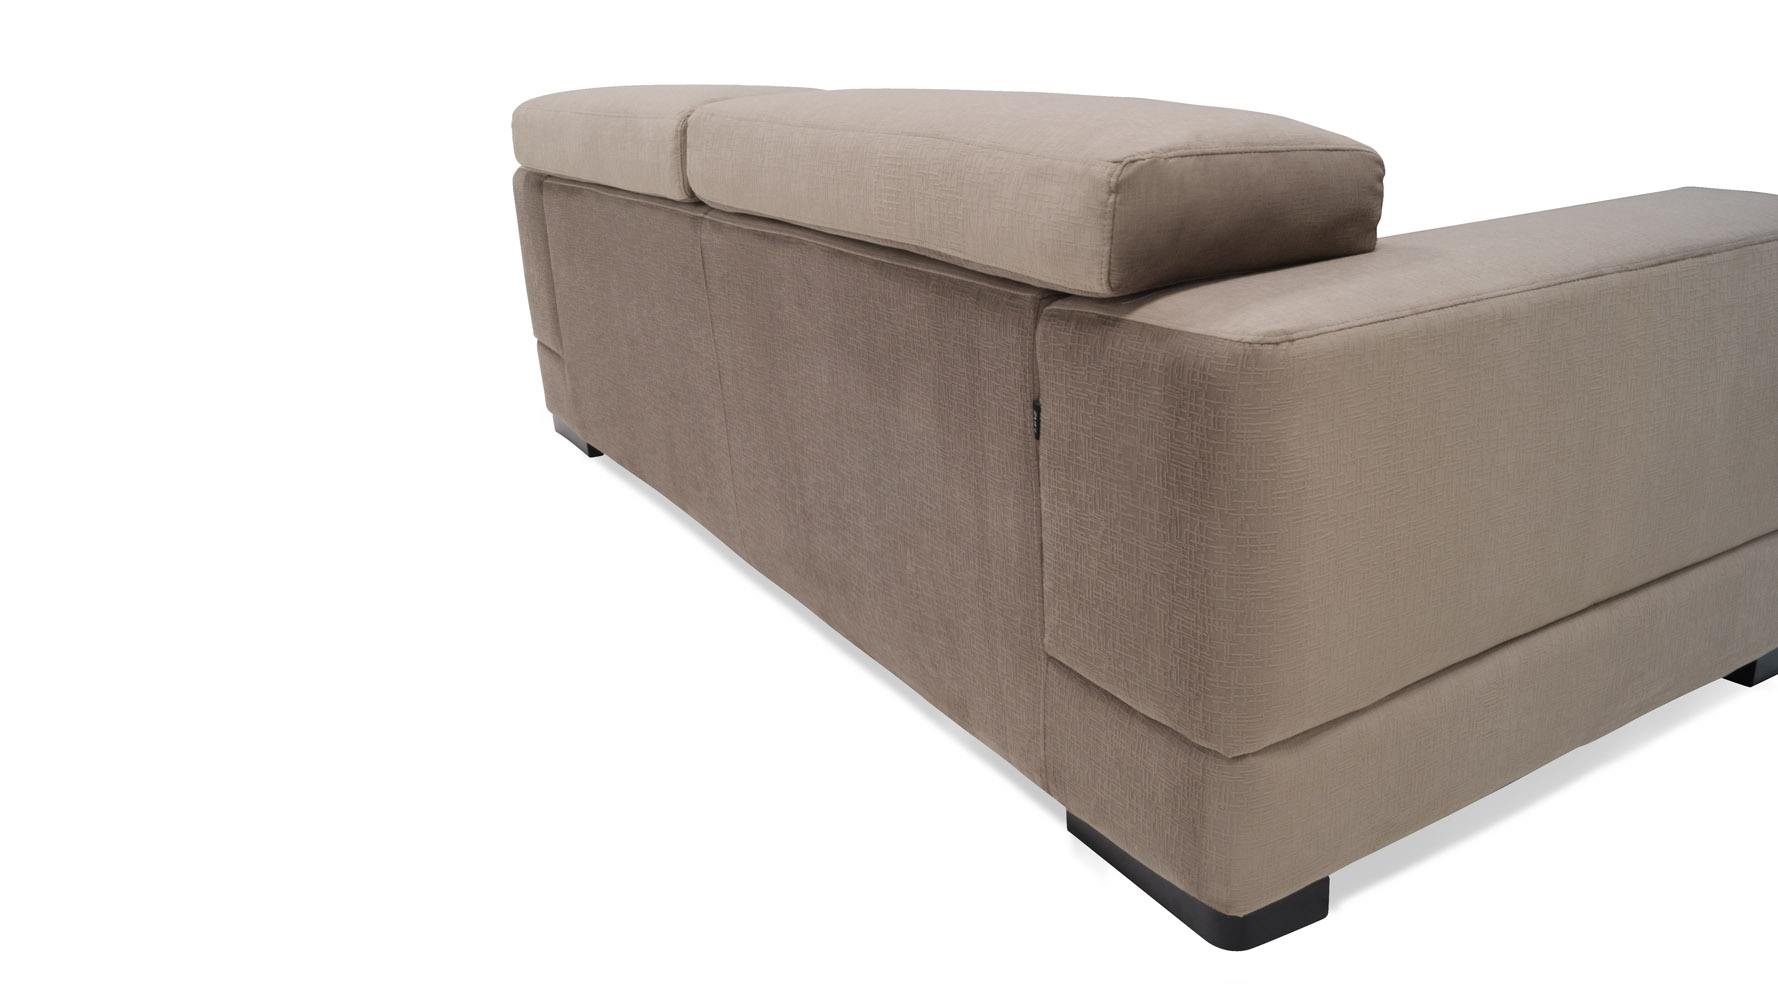 Pull Out Sleeper Sofa Chester Pull Out Fabric Sleeper Sofa Zuri Furniture Chester Pull Out